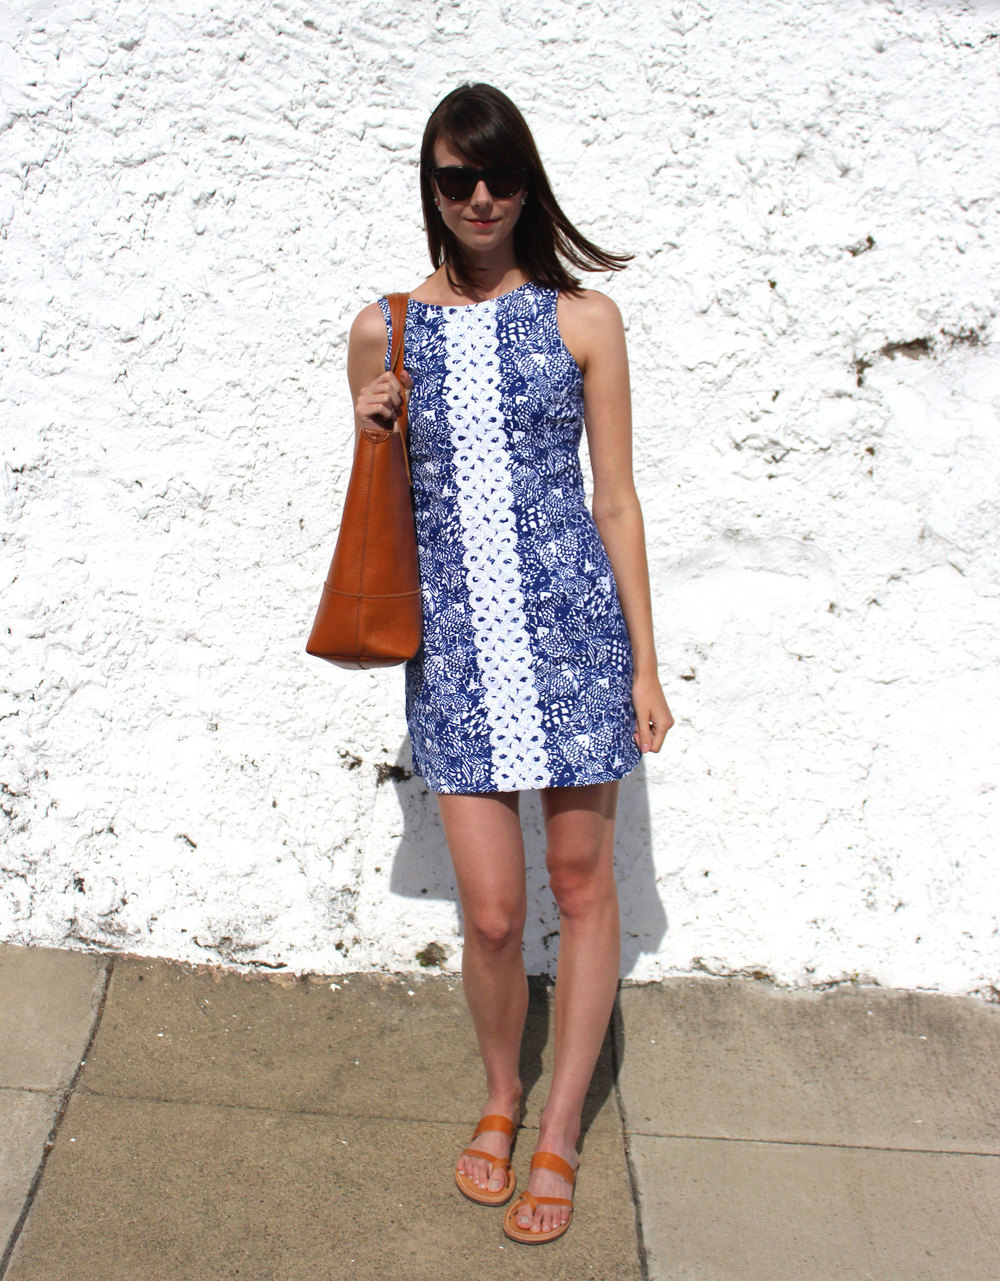 #LillyForTarget Upstream Shift Dress - A Preppy Look Pairing Camel and Blue   | Sundays and Somedays